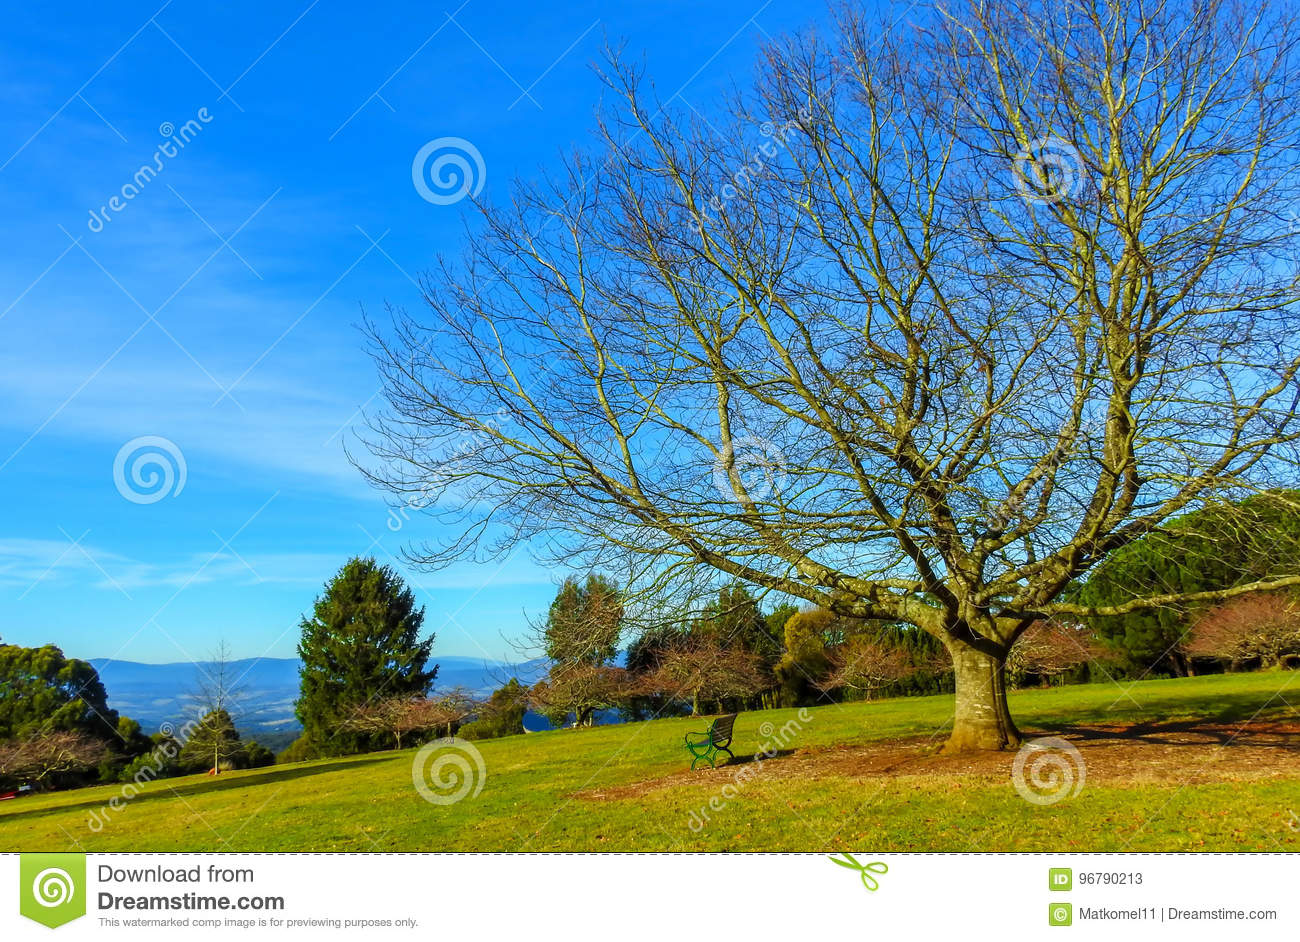 Naked Tree And Bench On Warm Autumn Day Stock Image